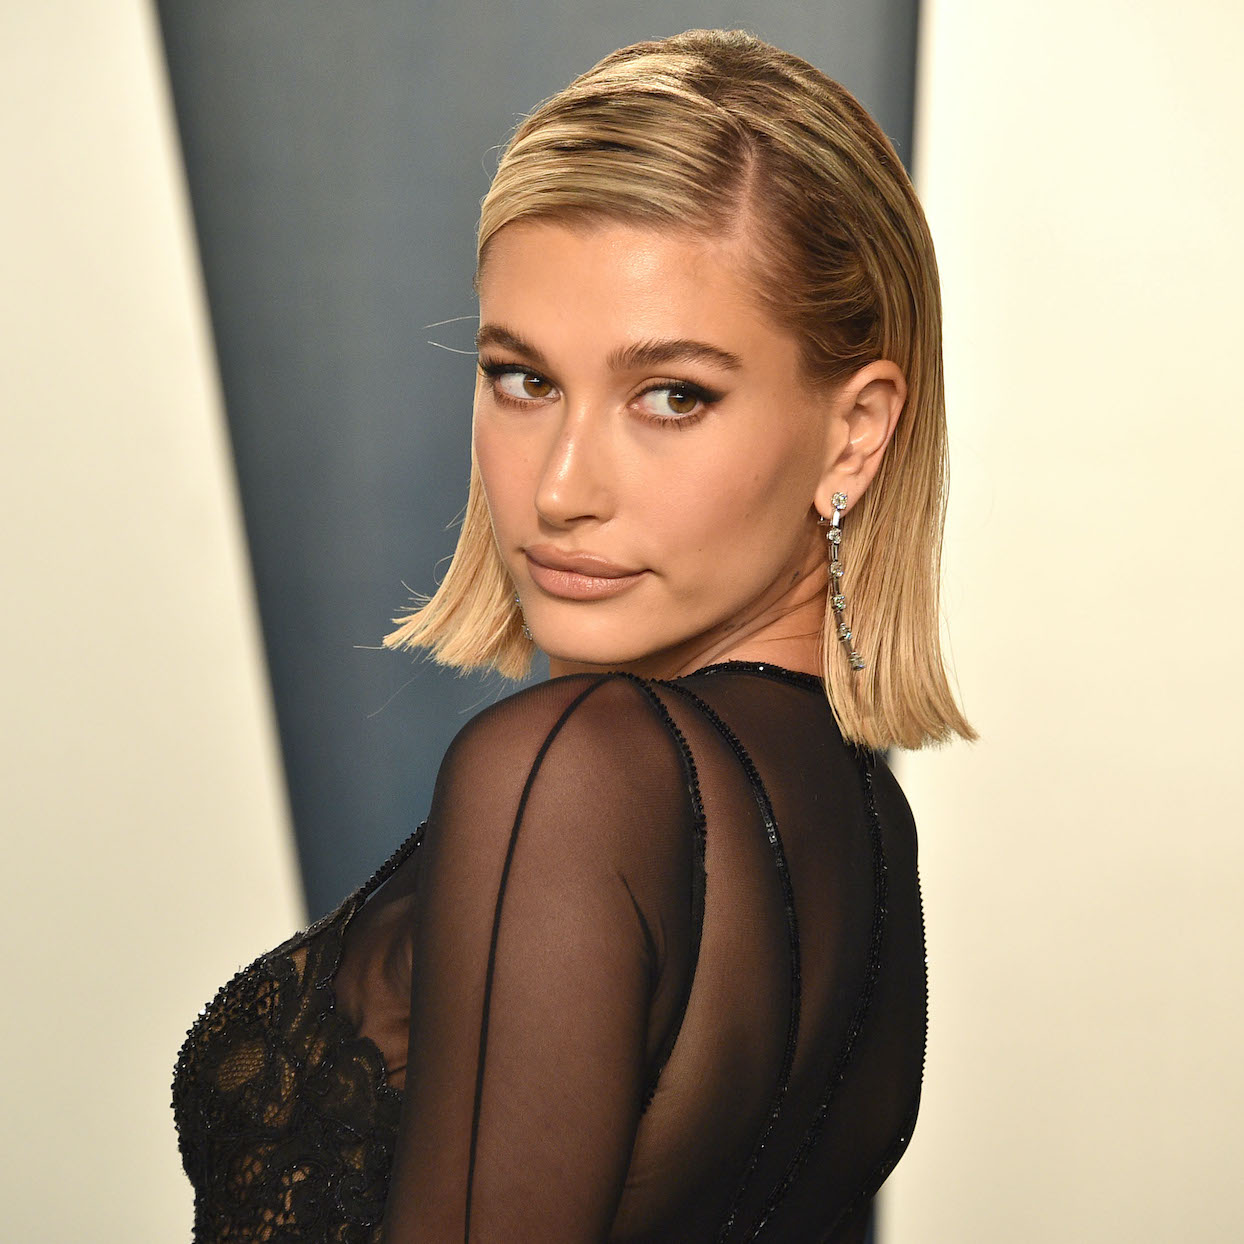 Hailey Bieber attends the 2020 Vanity Fair Oscar Party at Wallis Annenberg Center for the Performing Arts on February 09, 2020 in Beverly Hills, California